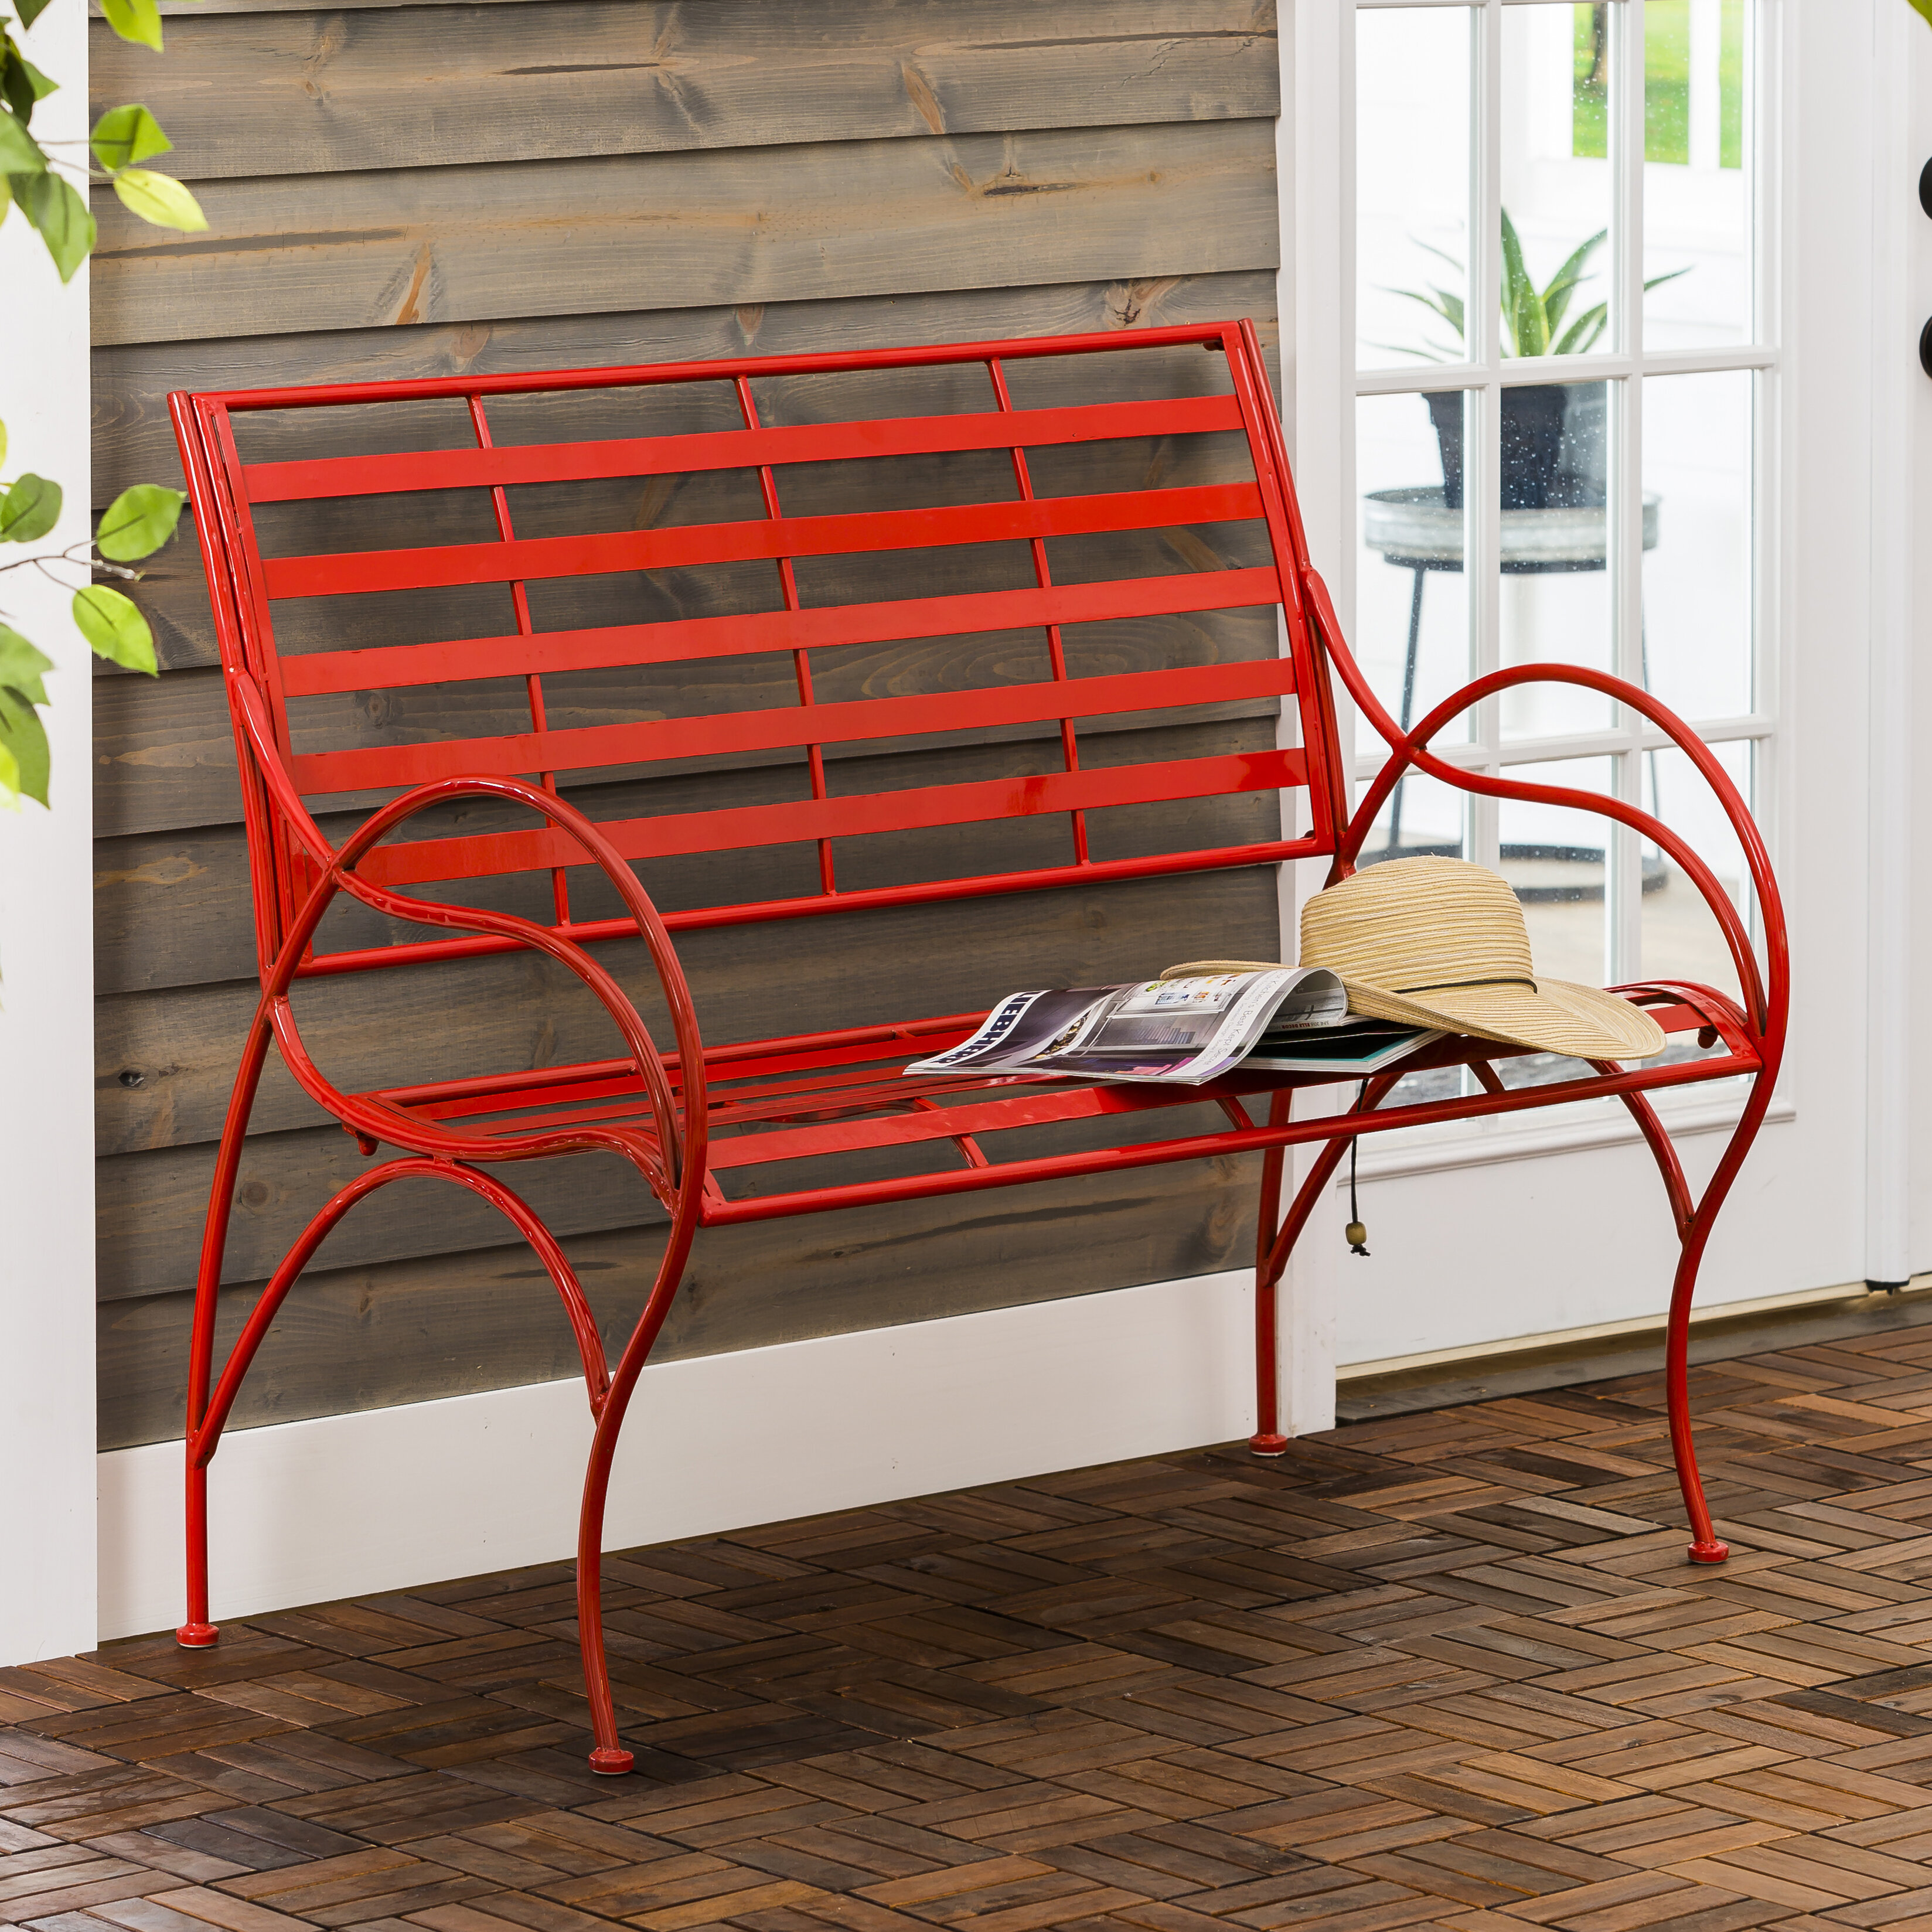 ideas wood sale plans metal garden benches outdoor her tool bench belt